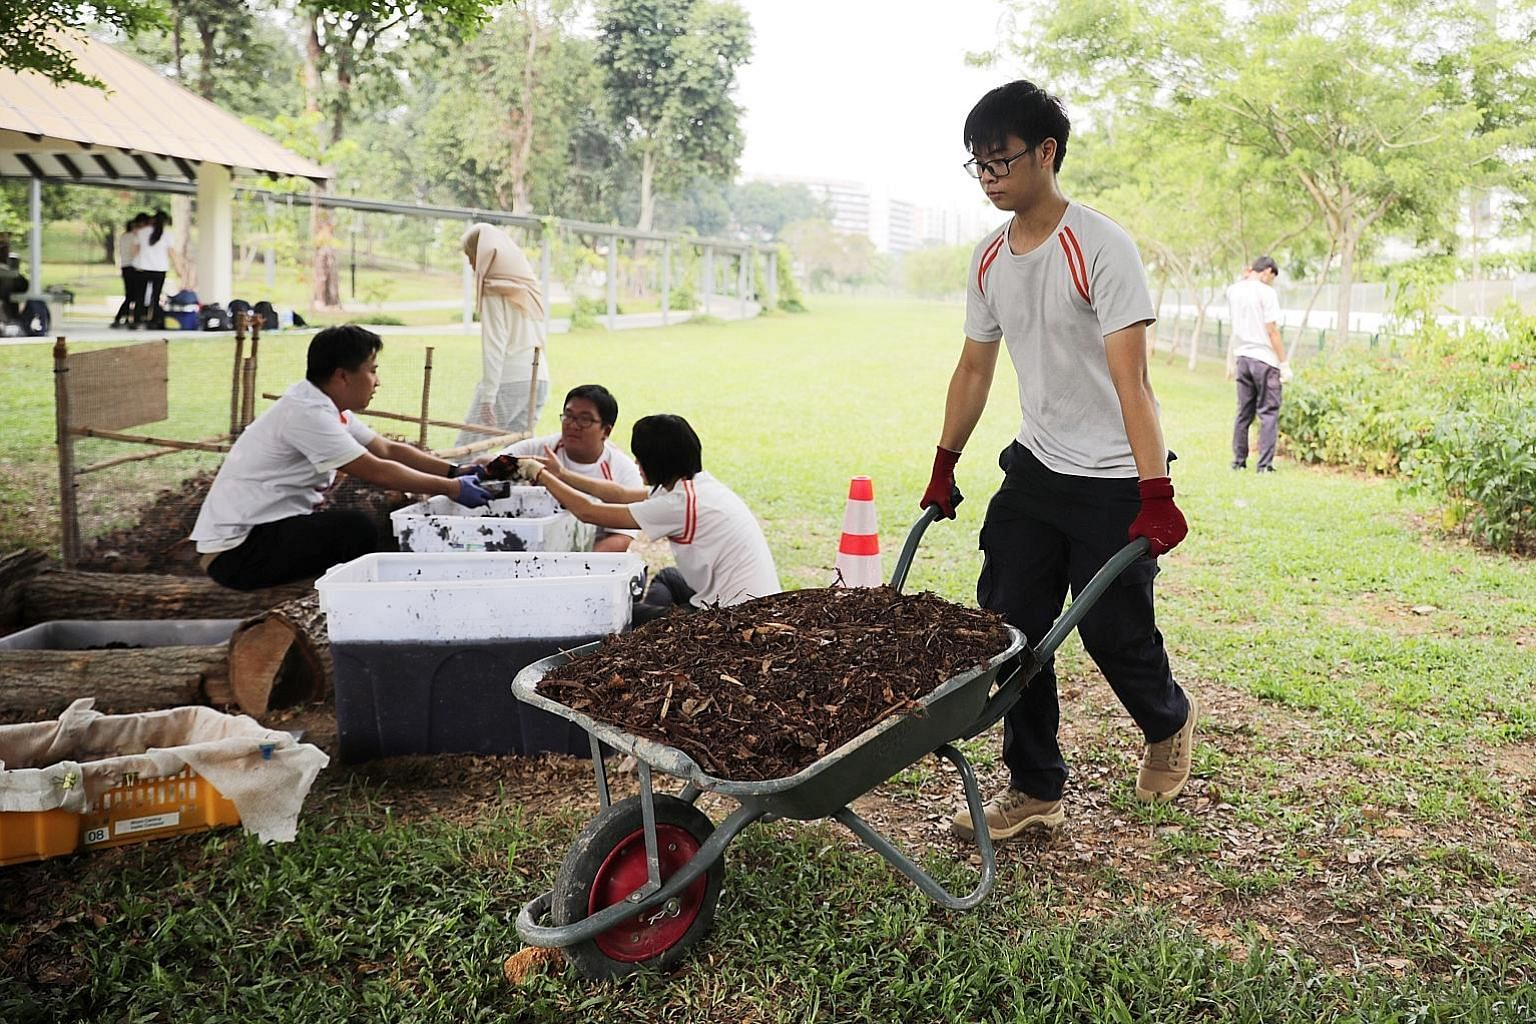 Students from ITE's Higher Nitec in Landscape Management and Design working at the Compositing and Vermiculture Zone at Bedok Town Park yesterday. ITE students also designed a garden with therapeutic features, deployed robotic mowers for turf managem